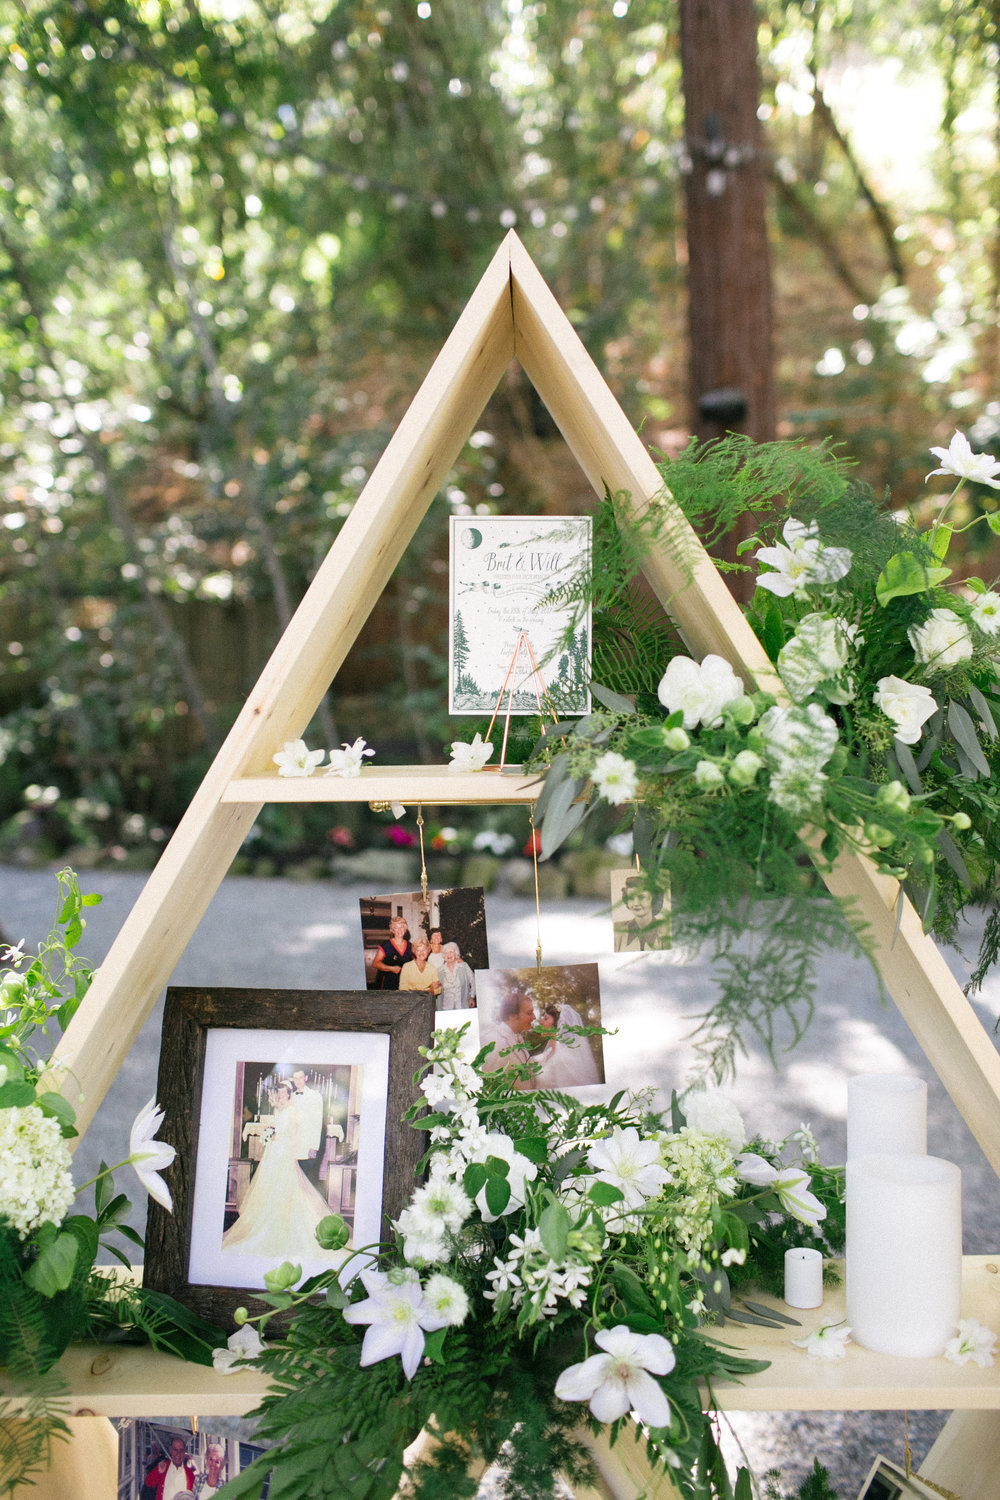 Family Photo Display Ideas for Weddings - Nichols Photographers